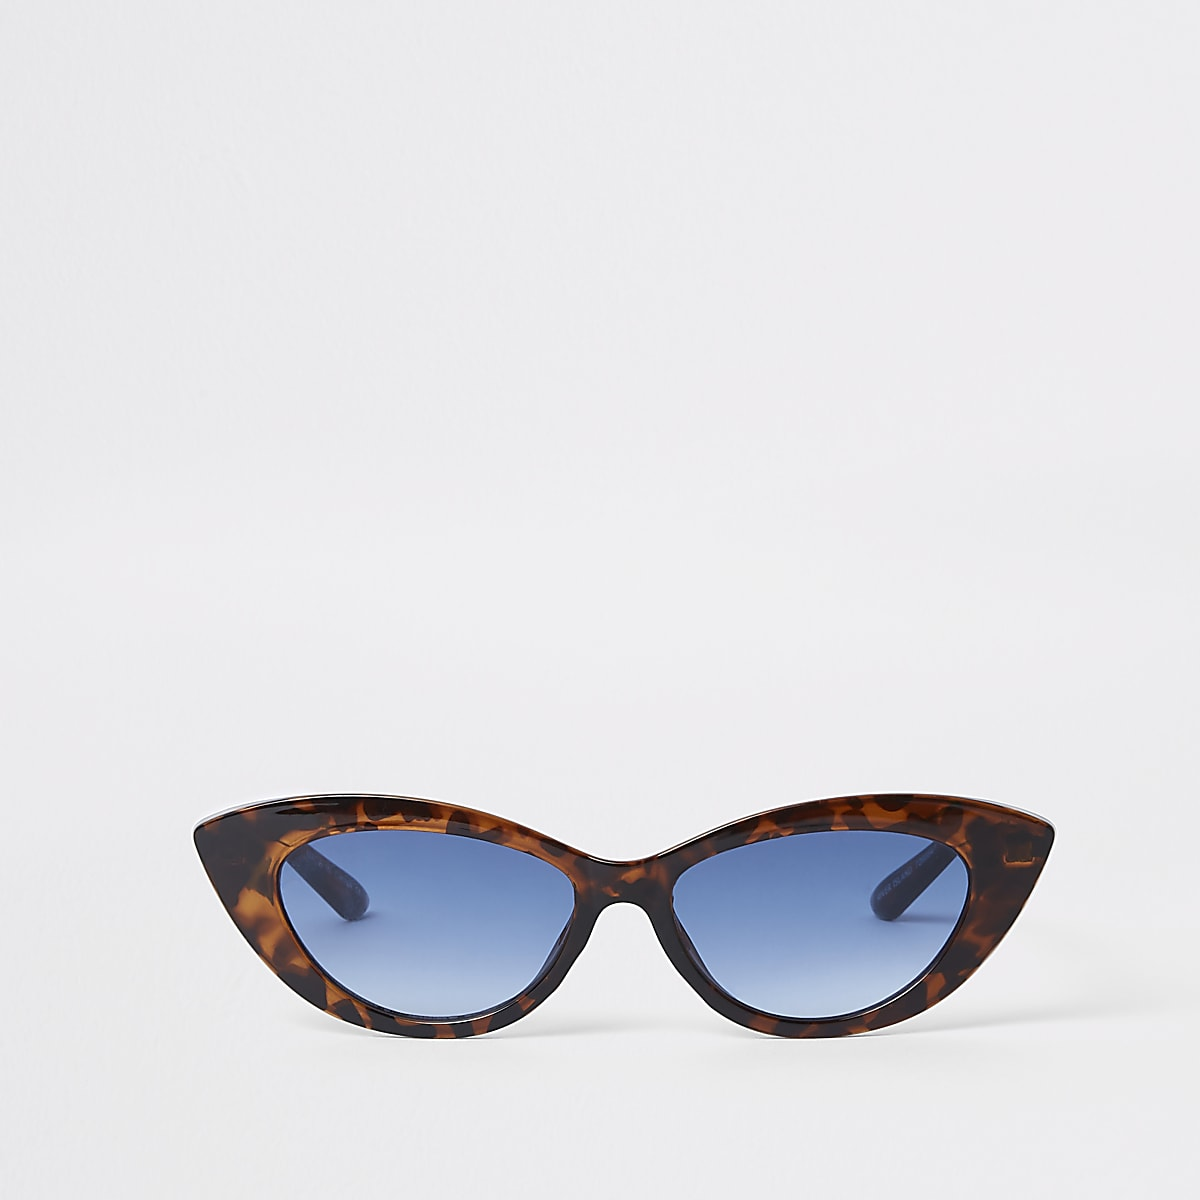 Brown tortoise shell print visor sunglasses